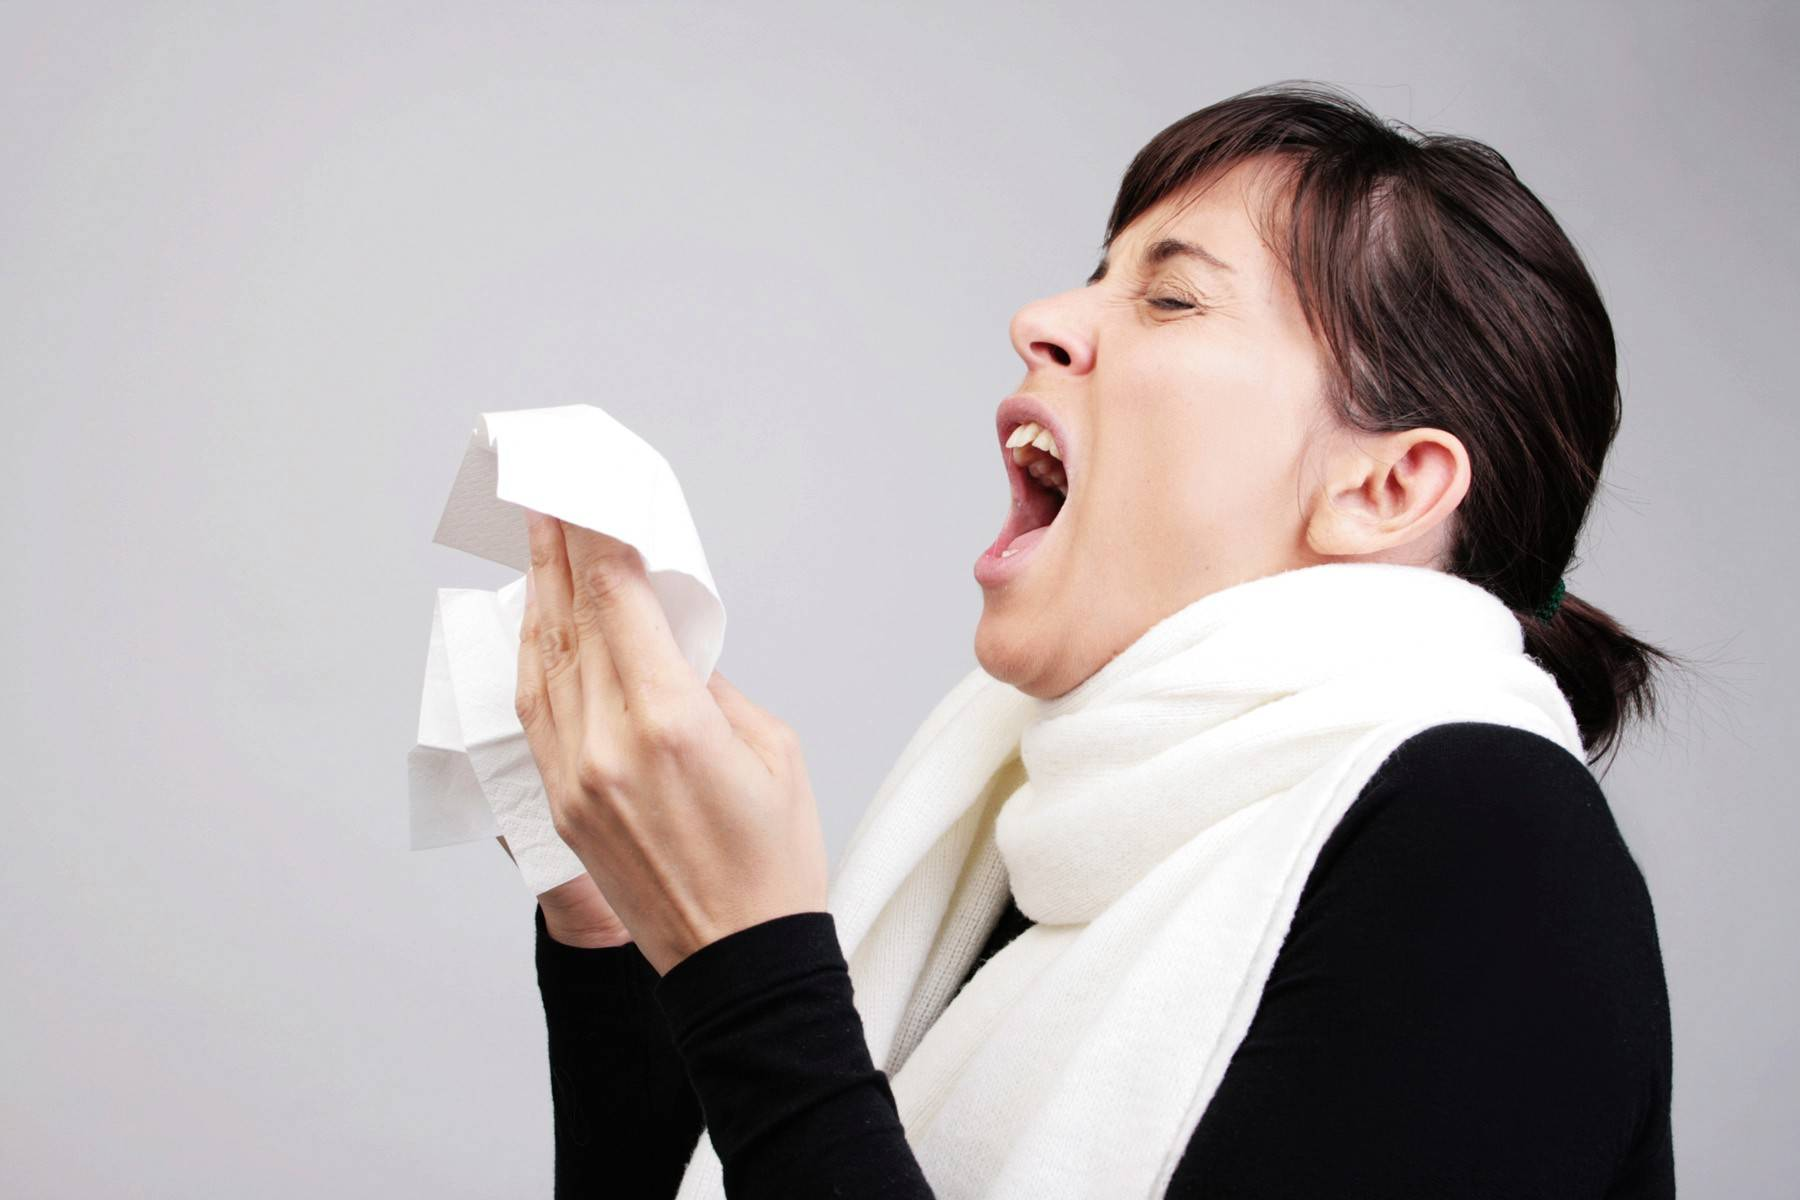 Are you coughing? Do you have a fever, chills, a sore throat or a headache?